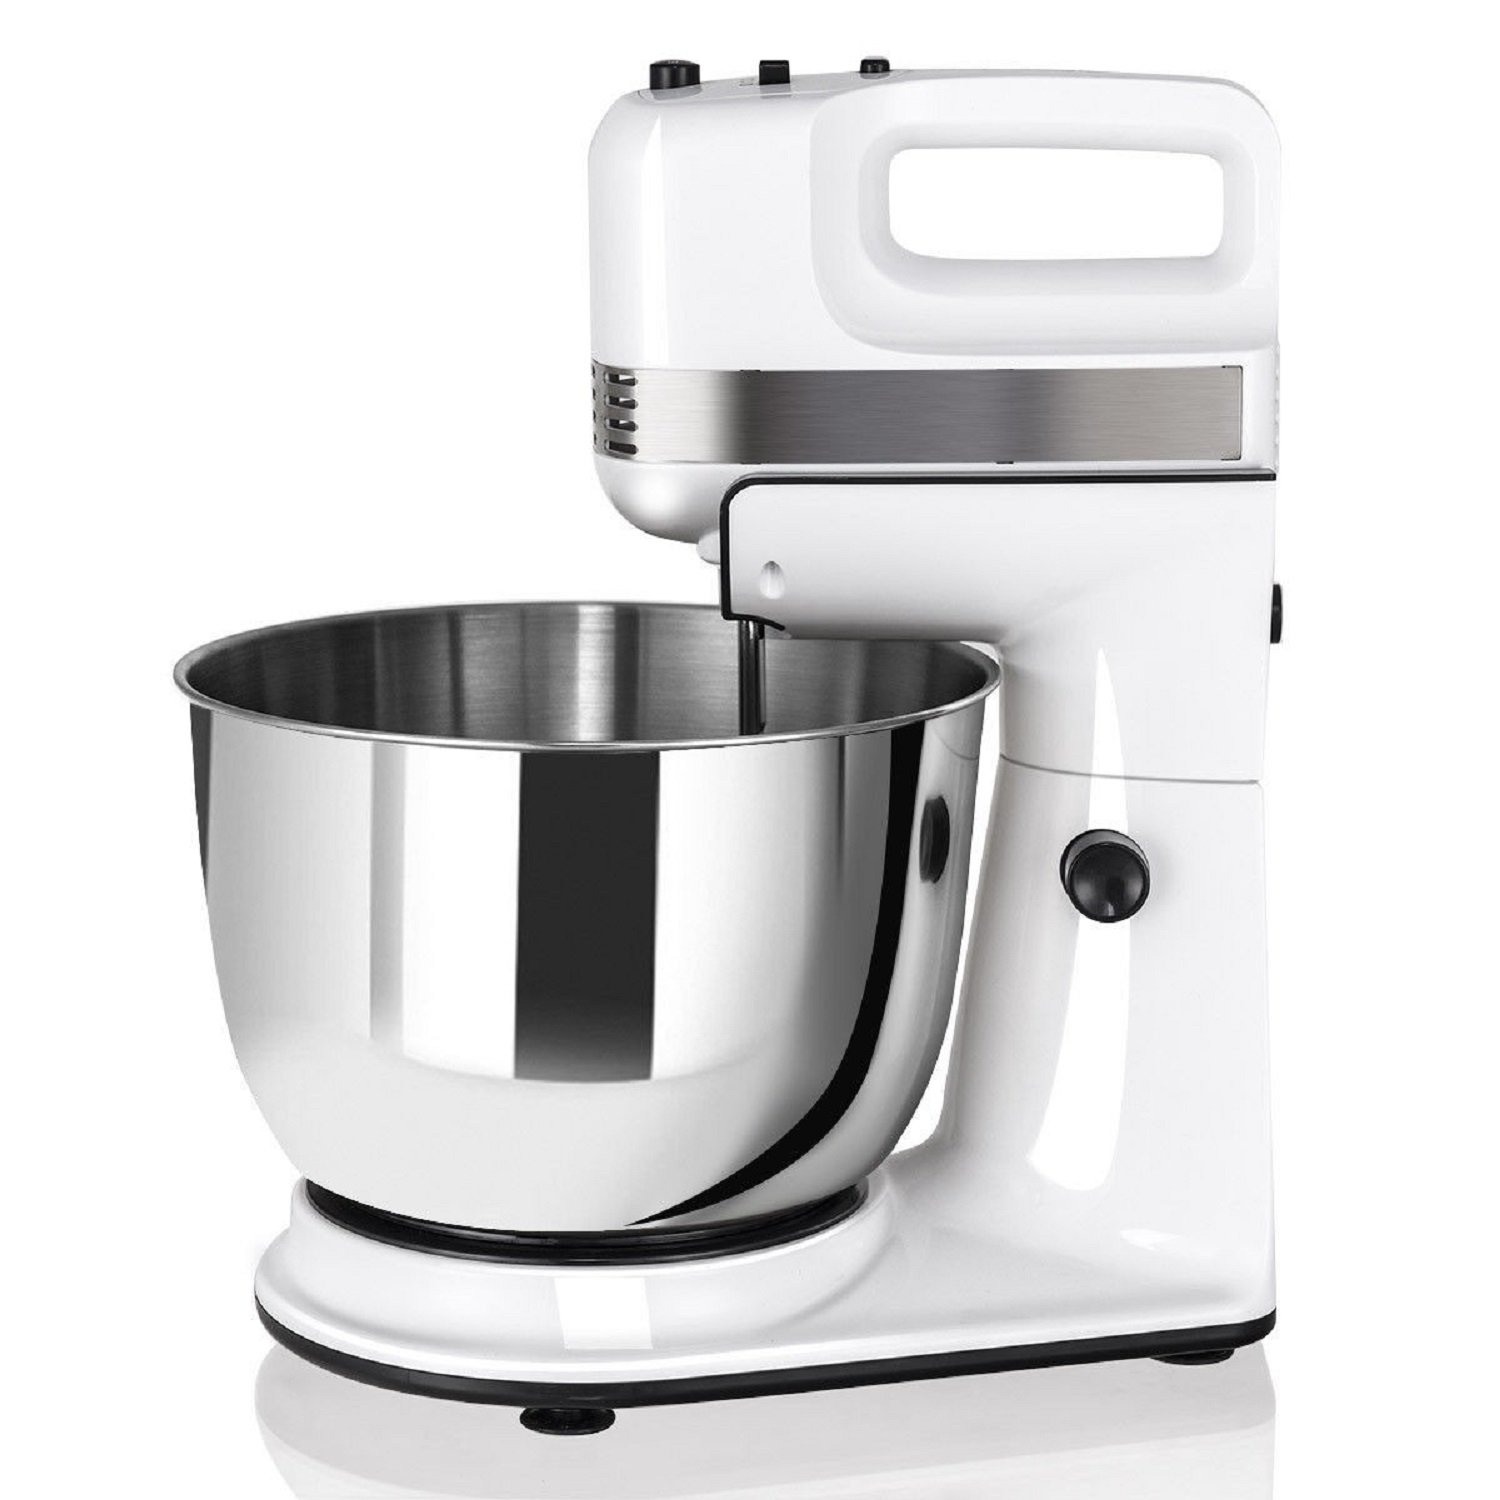 250W 5-Speed Stand Mixer w/Dough Hooks Beaters and Stainless Steel Bowl By SpiritOne